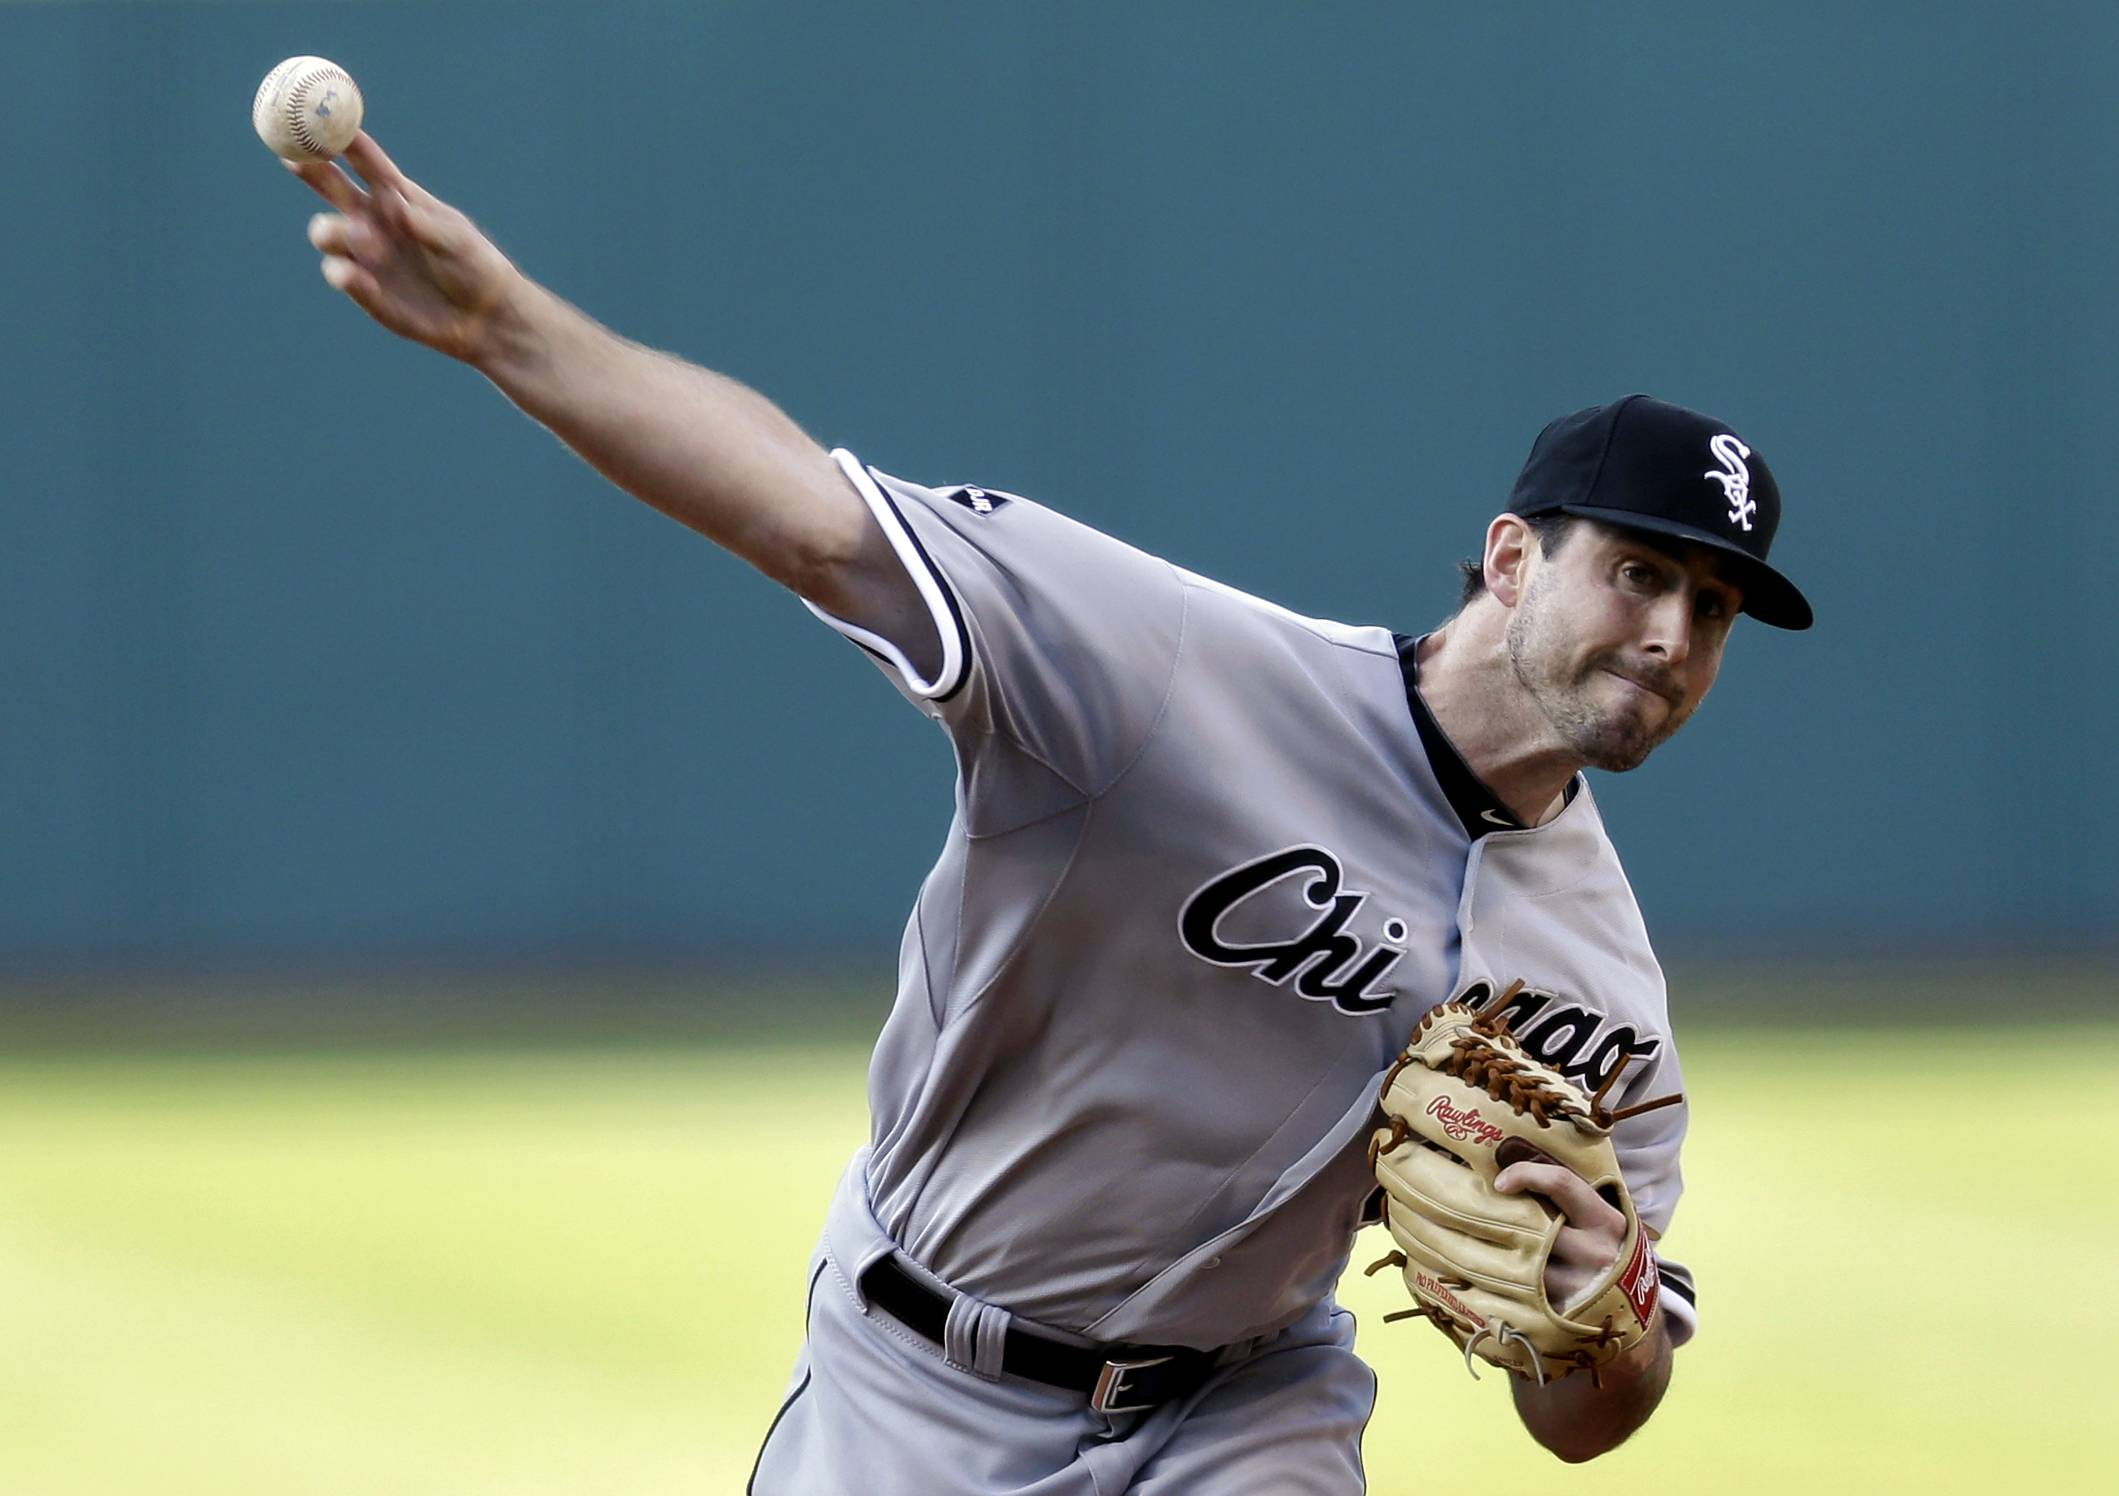 Chicago White Sox starting pitcher Scott Carroll delivers in the first inning of a baseball game against the Cleveland Indians, Saturday, May 3, 2014, in Cleveland. (AP Photo/Tony Dejak)